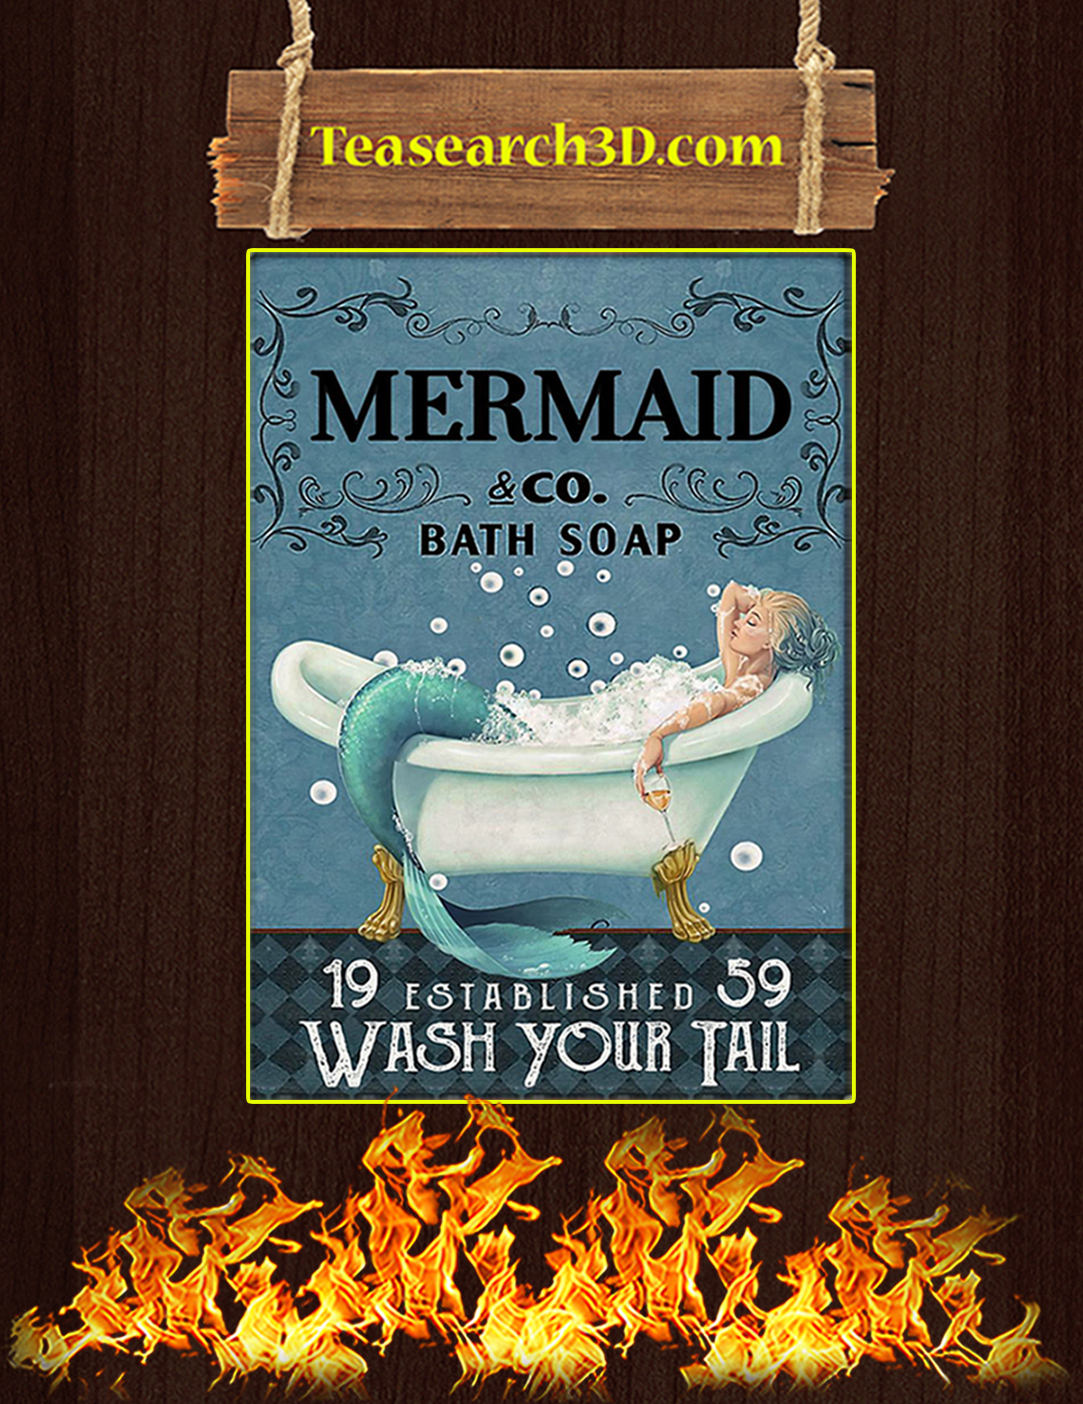 Mermaid co bath soap wash your tail poster A2